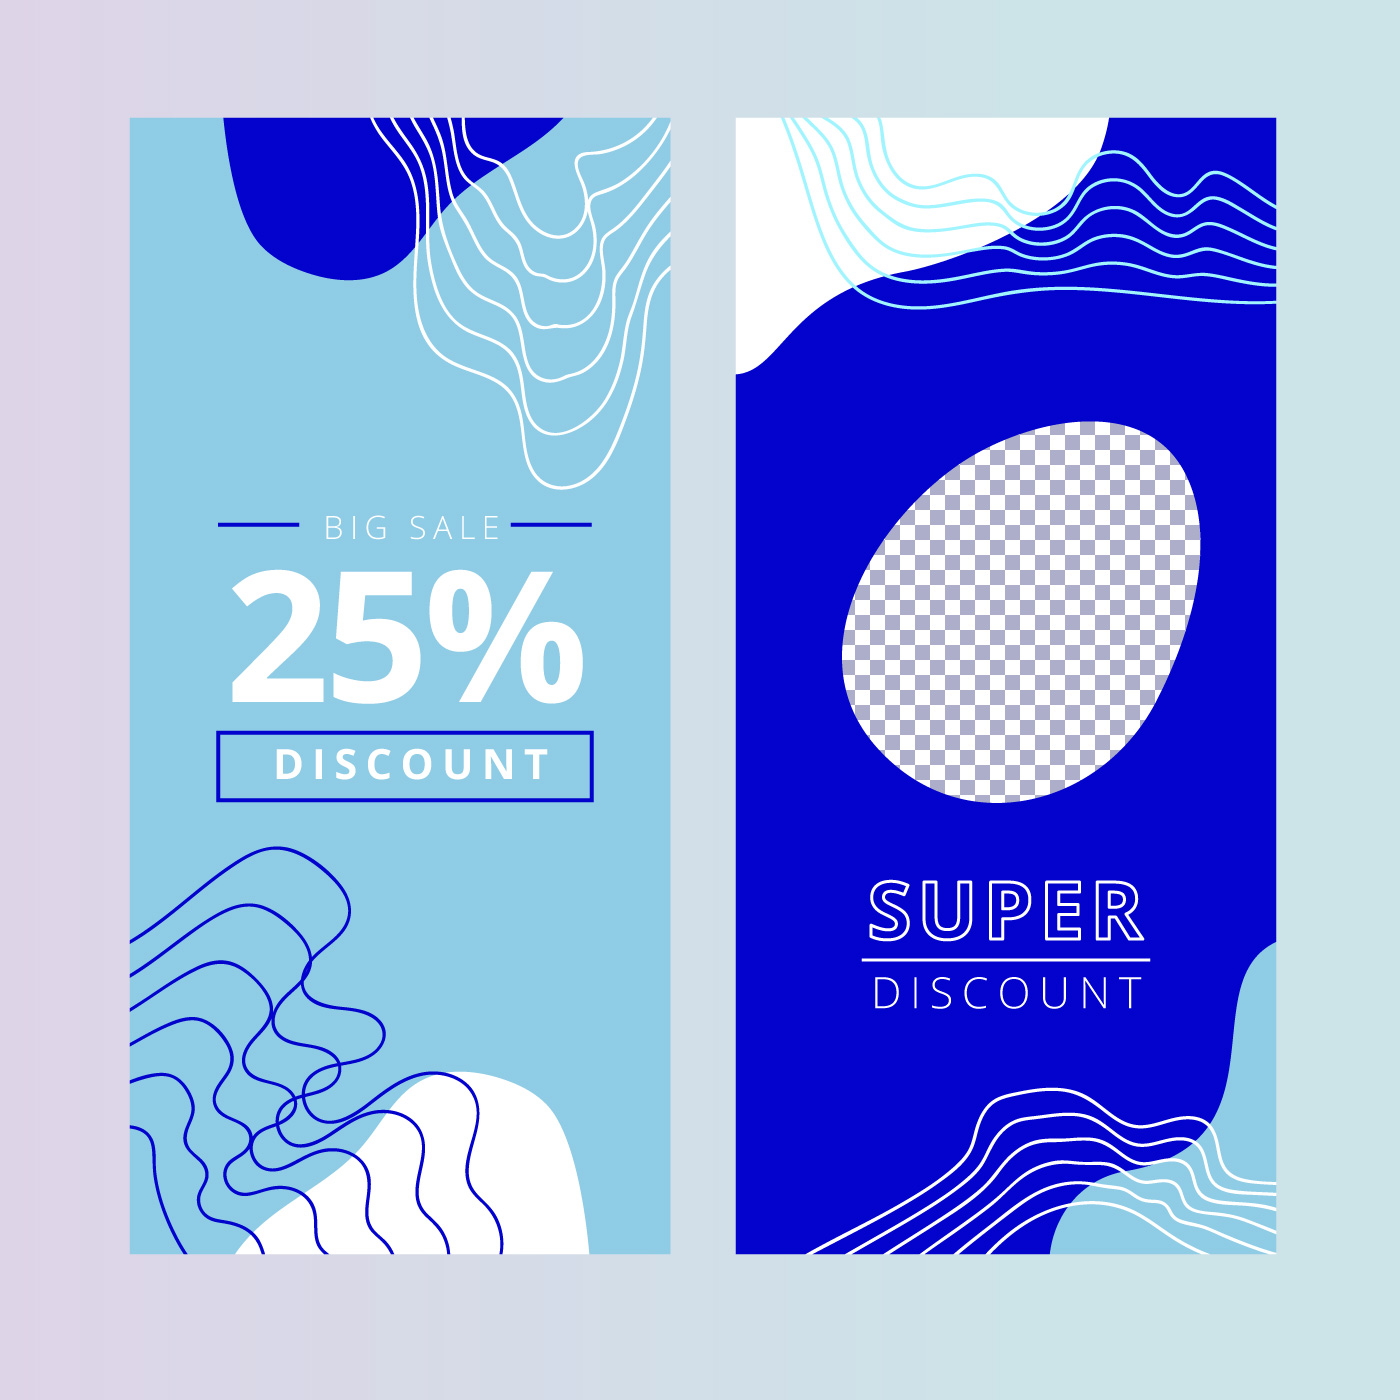 Vector Illustration Instagram: Blue Organic Instagram Template With Sale Text